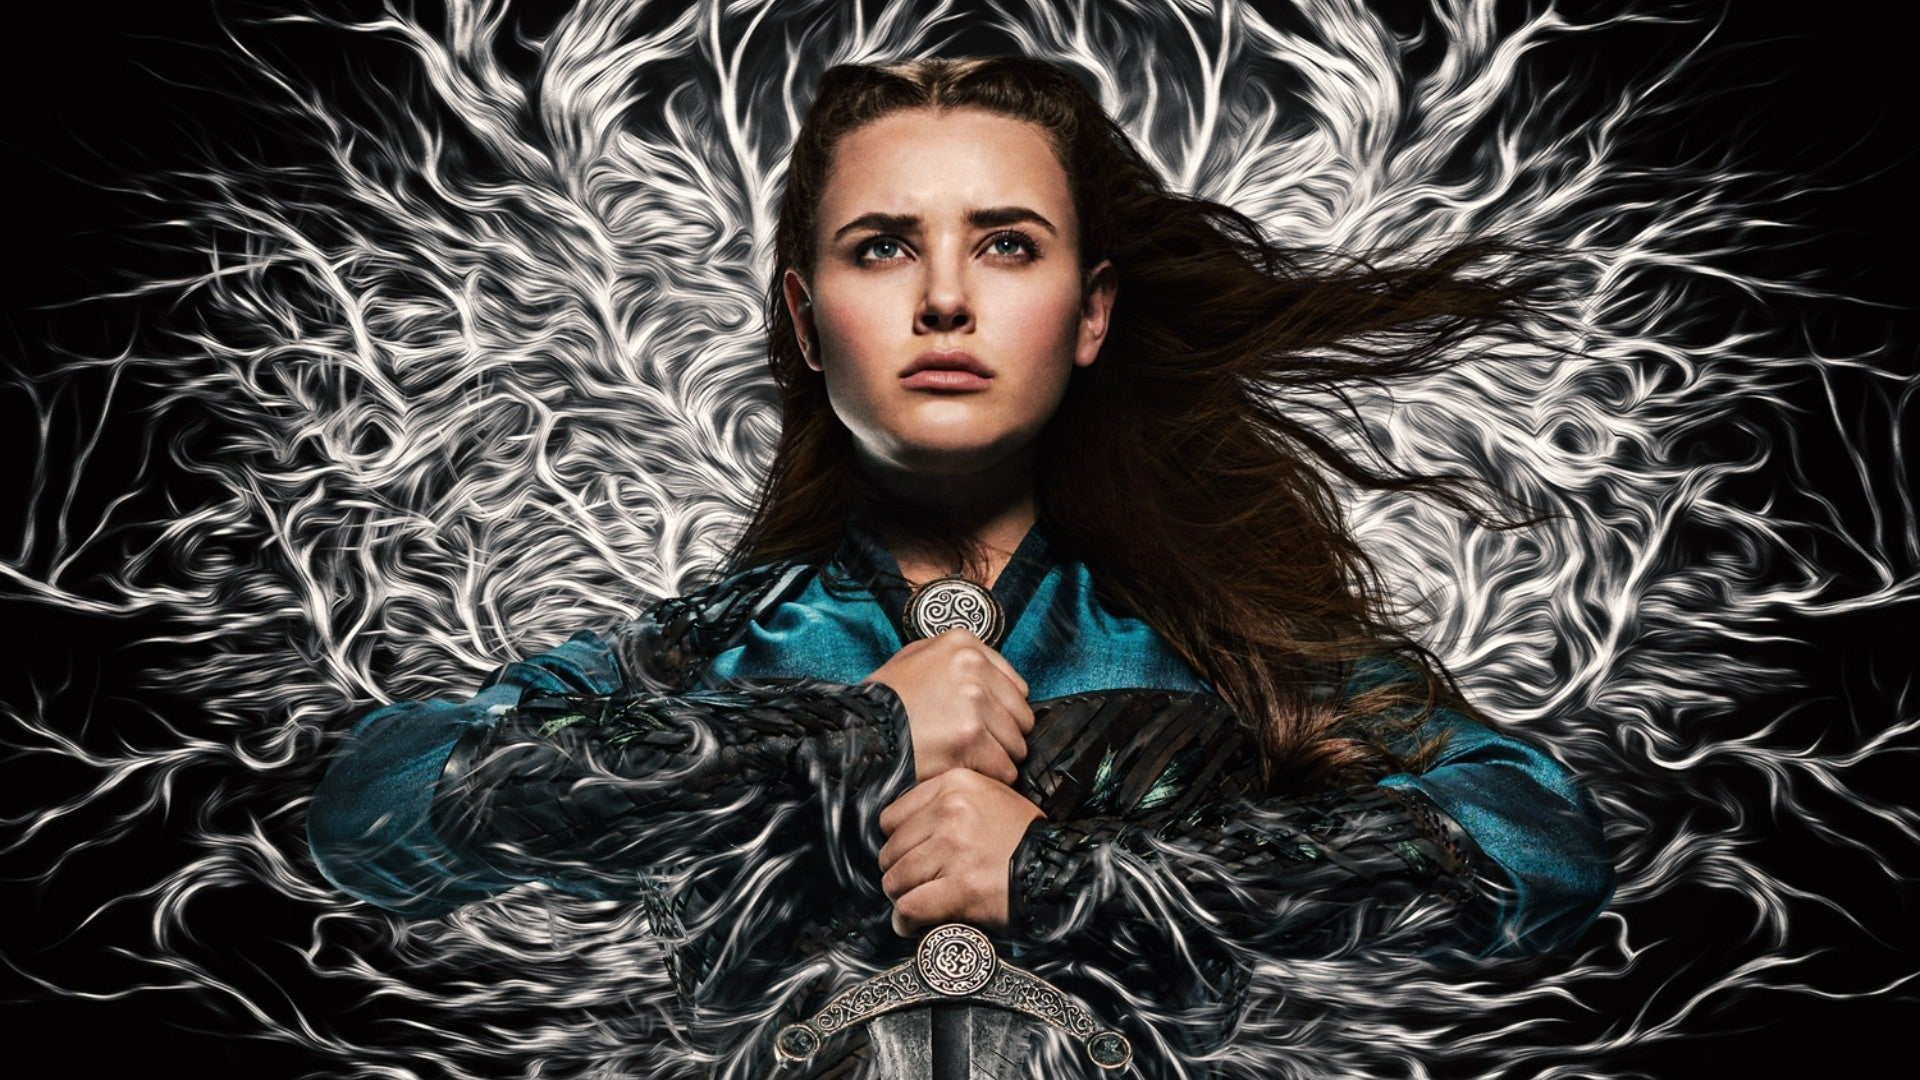 Cursed (2020), which features Katherine Langford, will release on Netflix in July